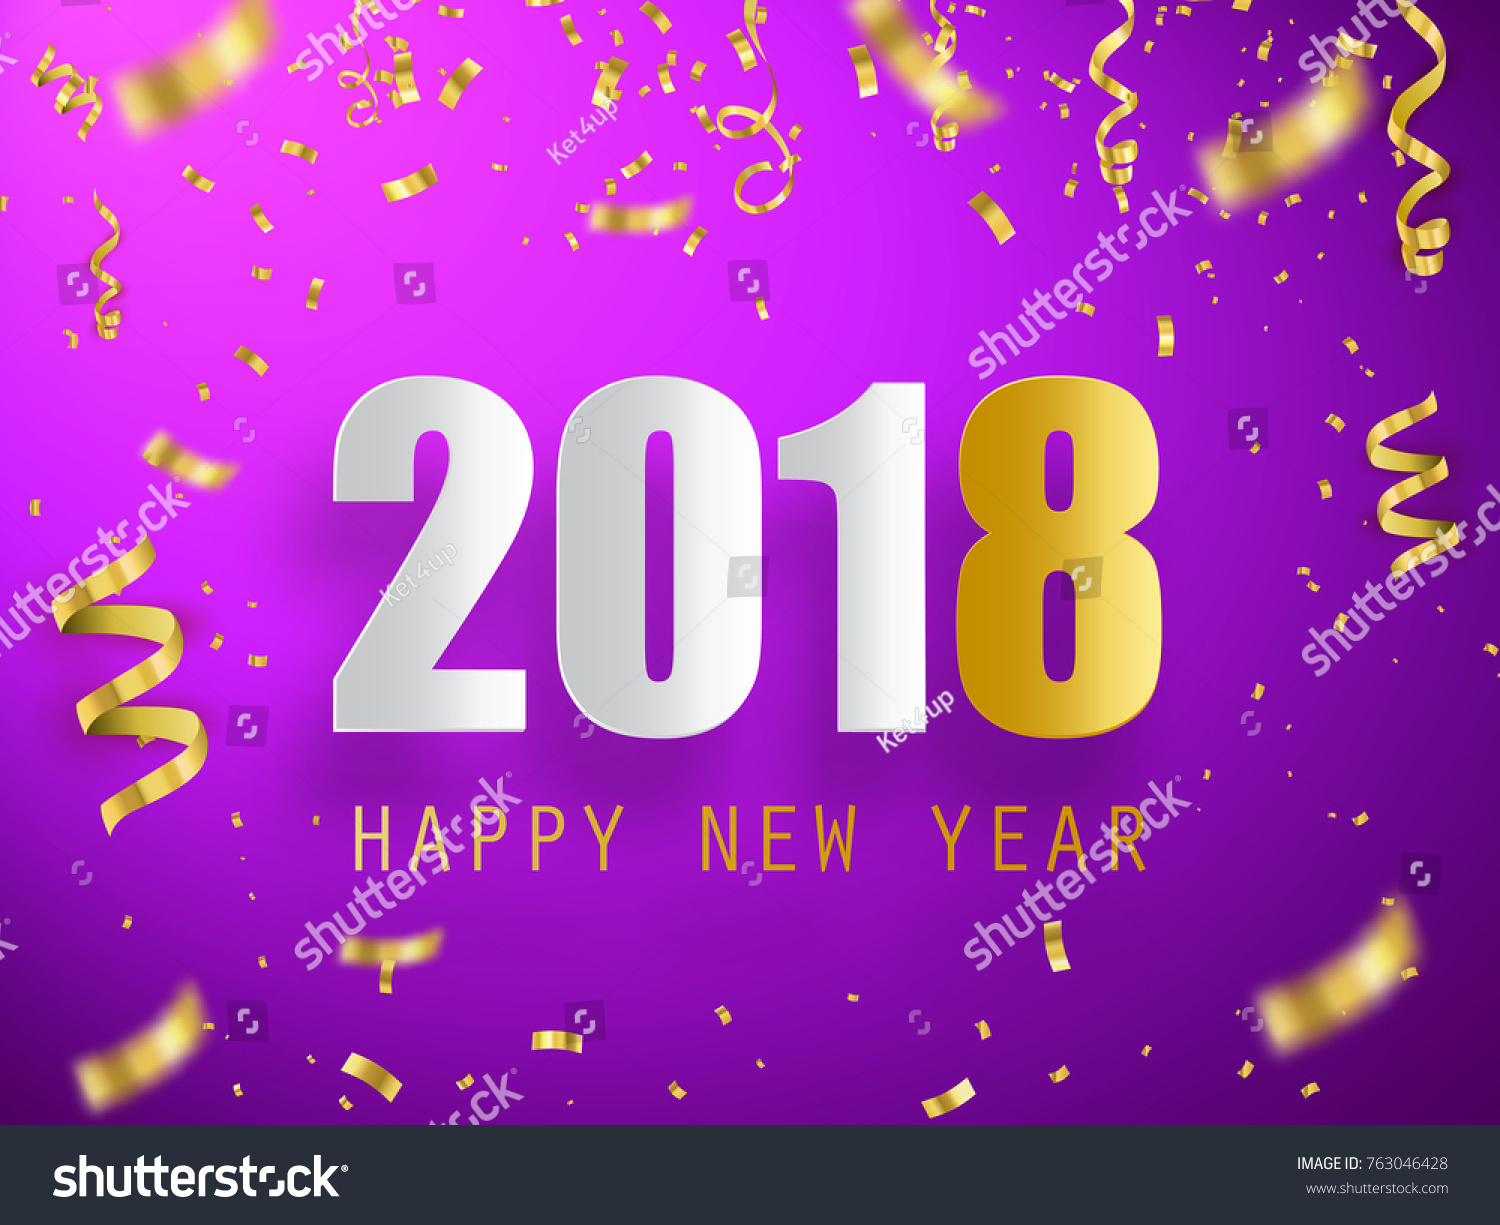 happy new year 2018 vector background with confetti